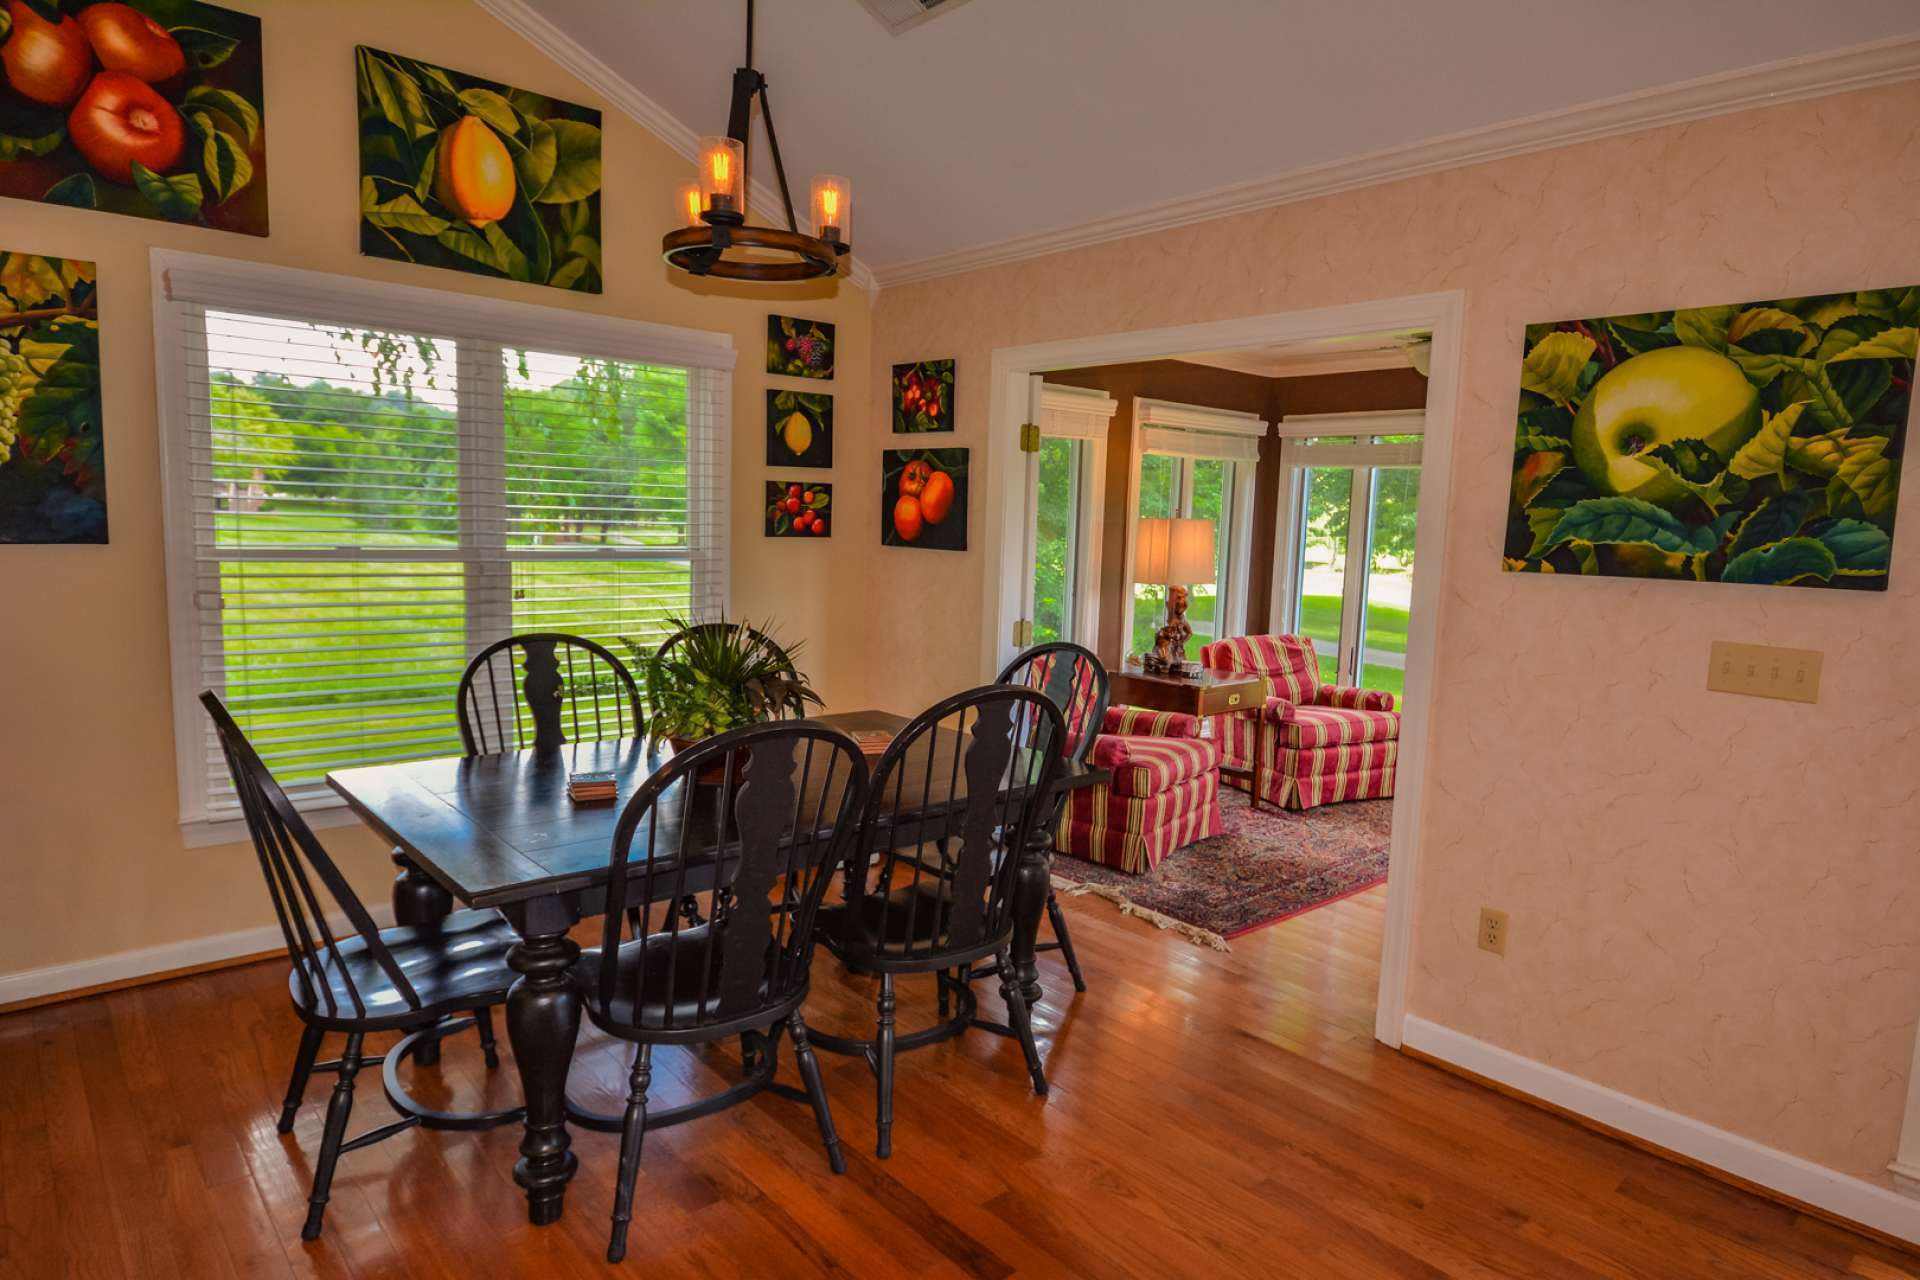 The formal dining area offers a pleasing dining experience and opens to a light filled sun room.